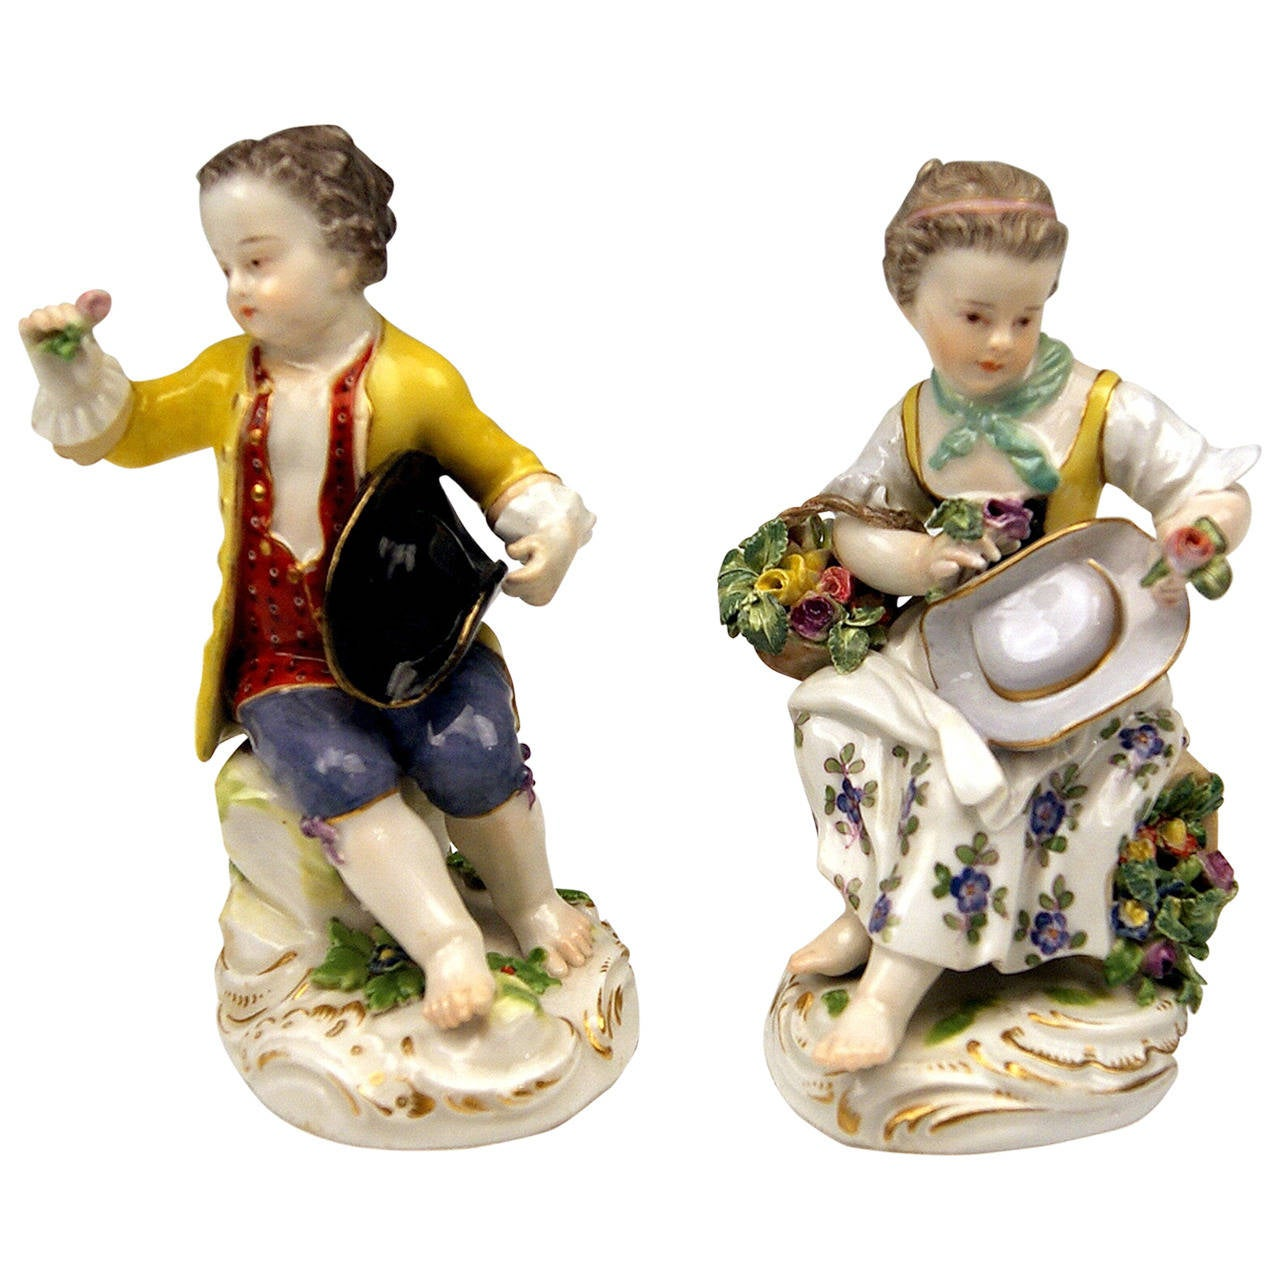 Meissen Pair of Gardener Child Rococo Figurines, Model 17 by Kaendler, 1870